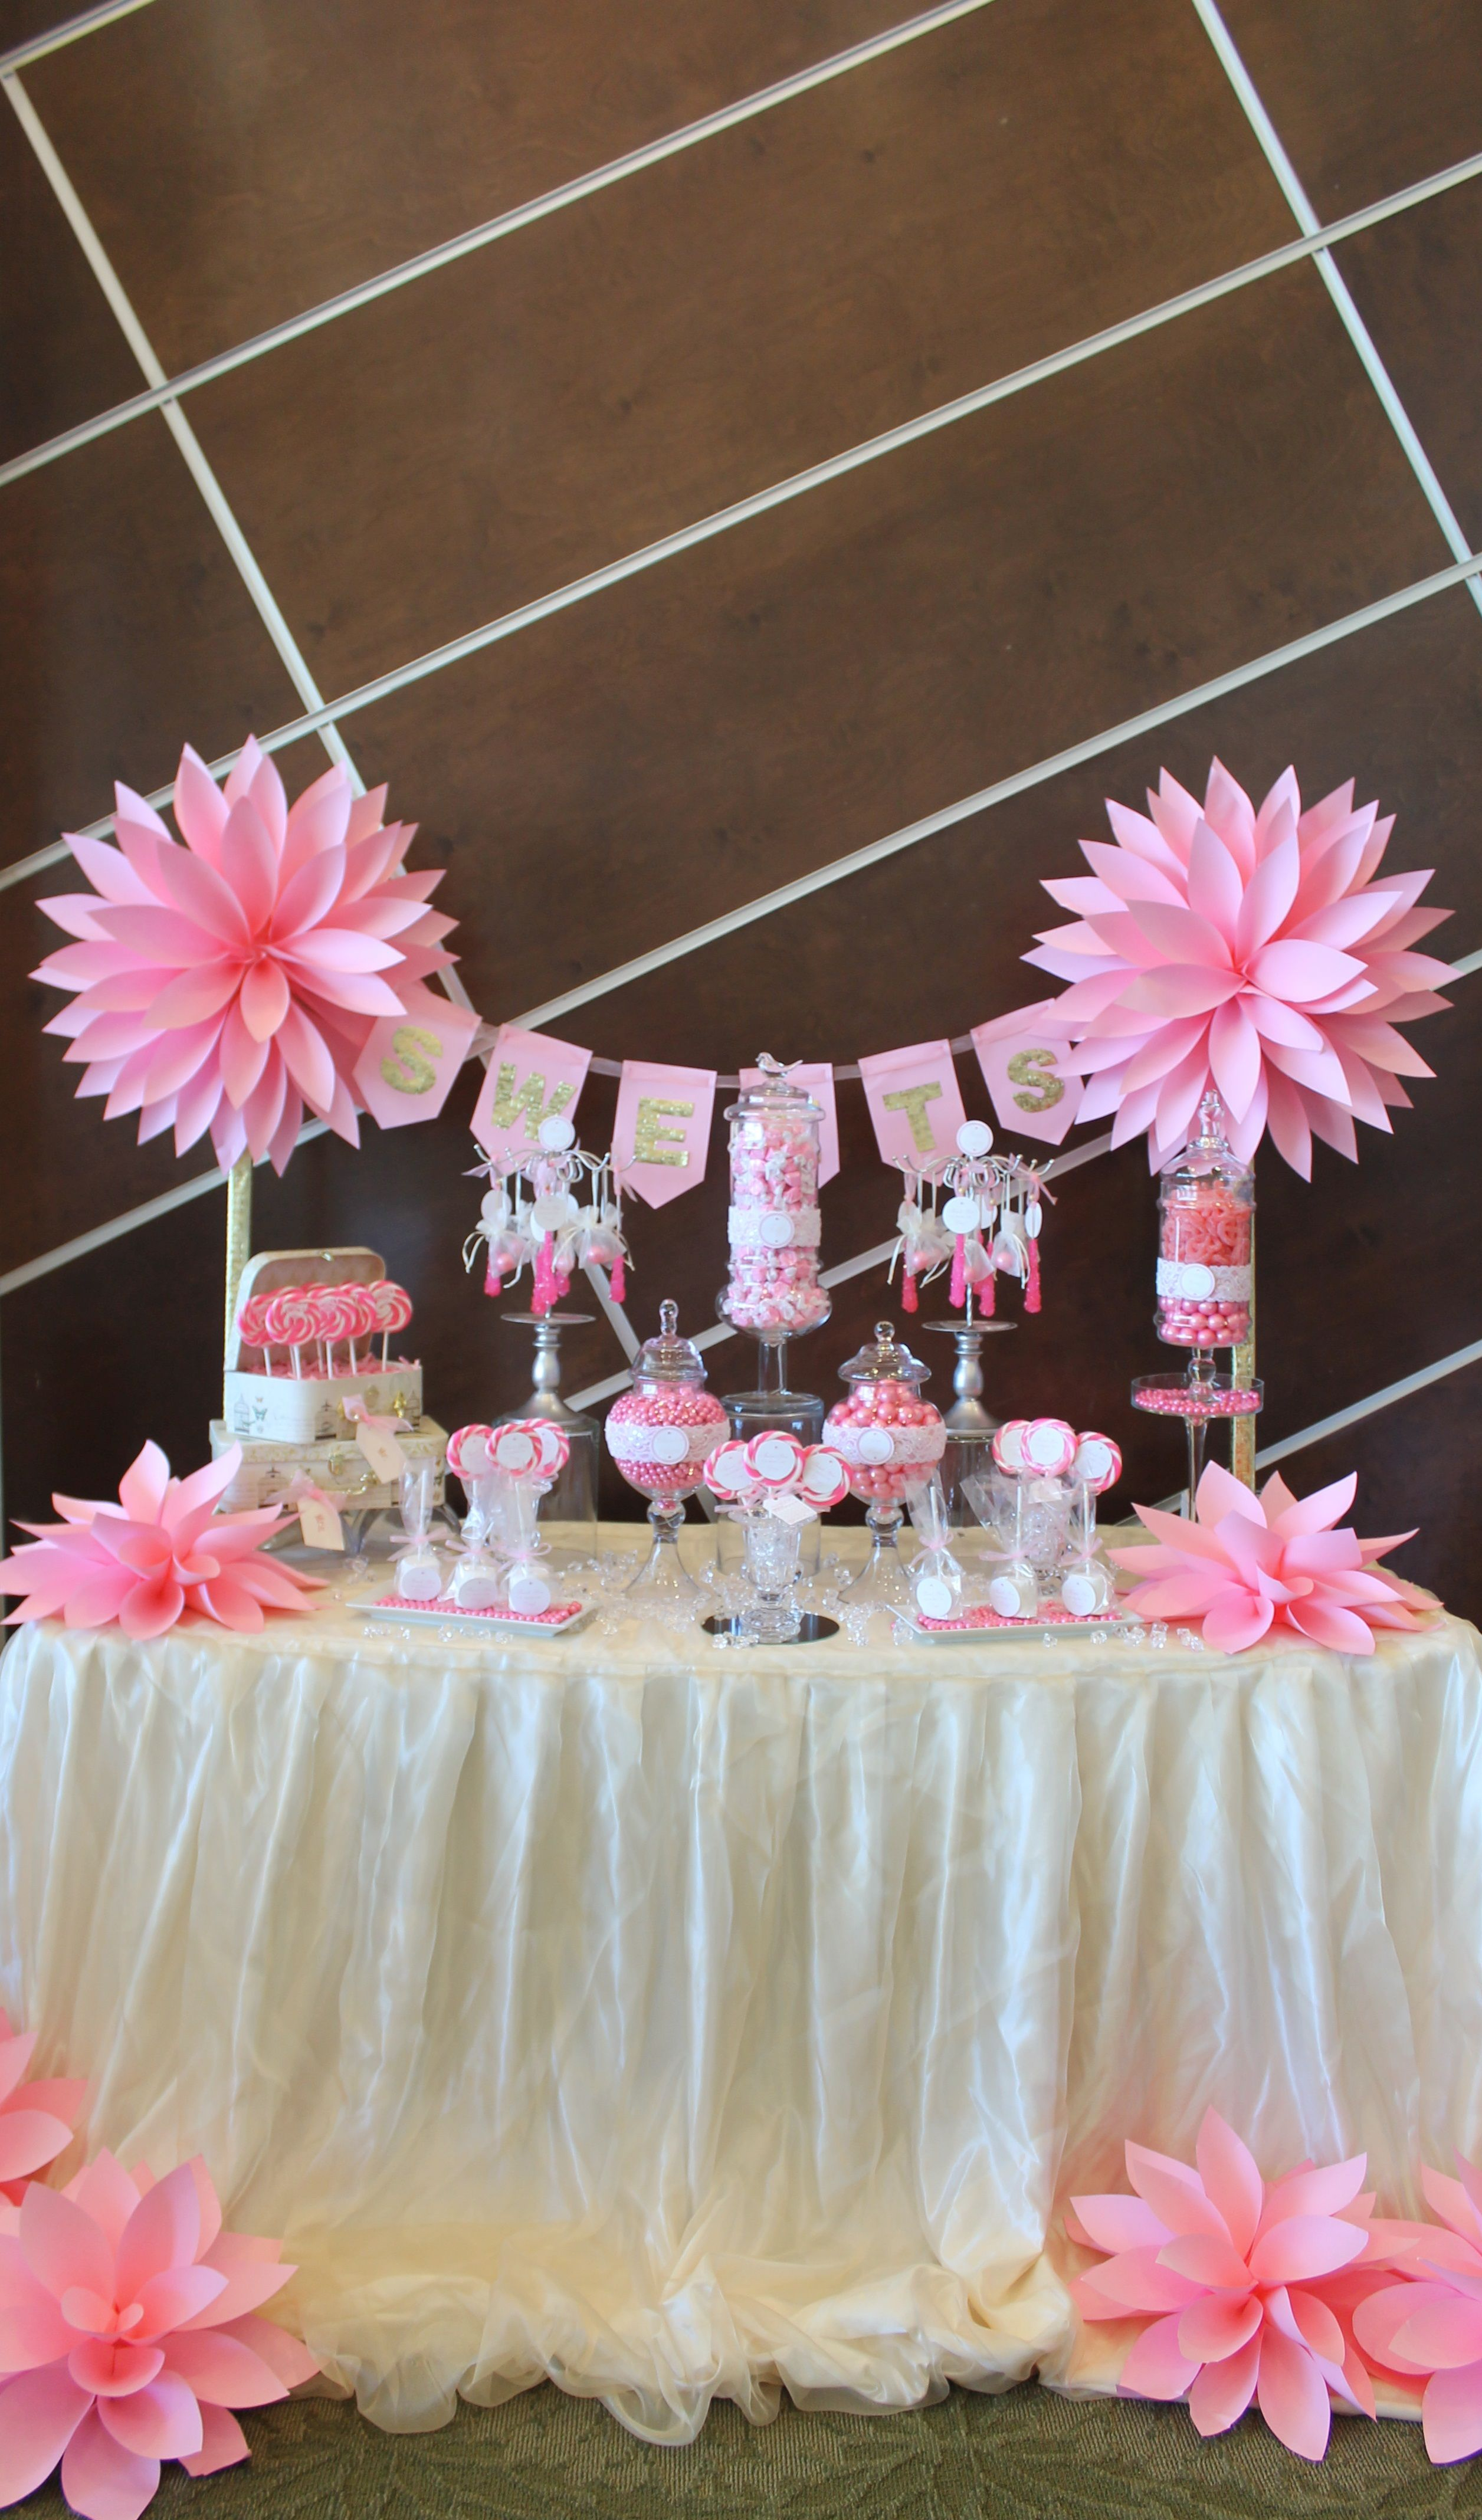 Sweet amp sparkly wedding candy buffet pictures to pin on pinterest - By Tasty Tables Pink Candy Buffet Pink Flowers Paper Flowers Candy Buffet San Diego Wedding Petite Table Small Dessert Table